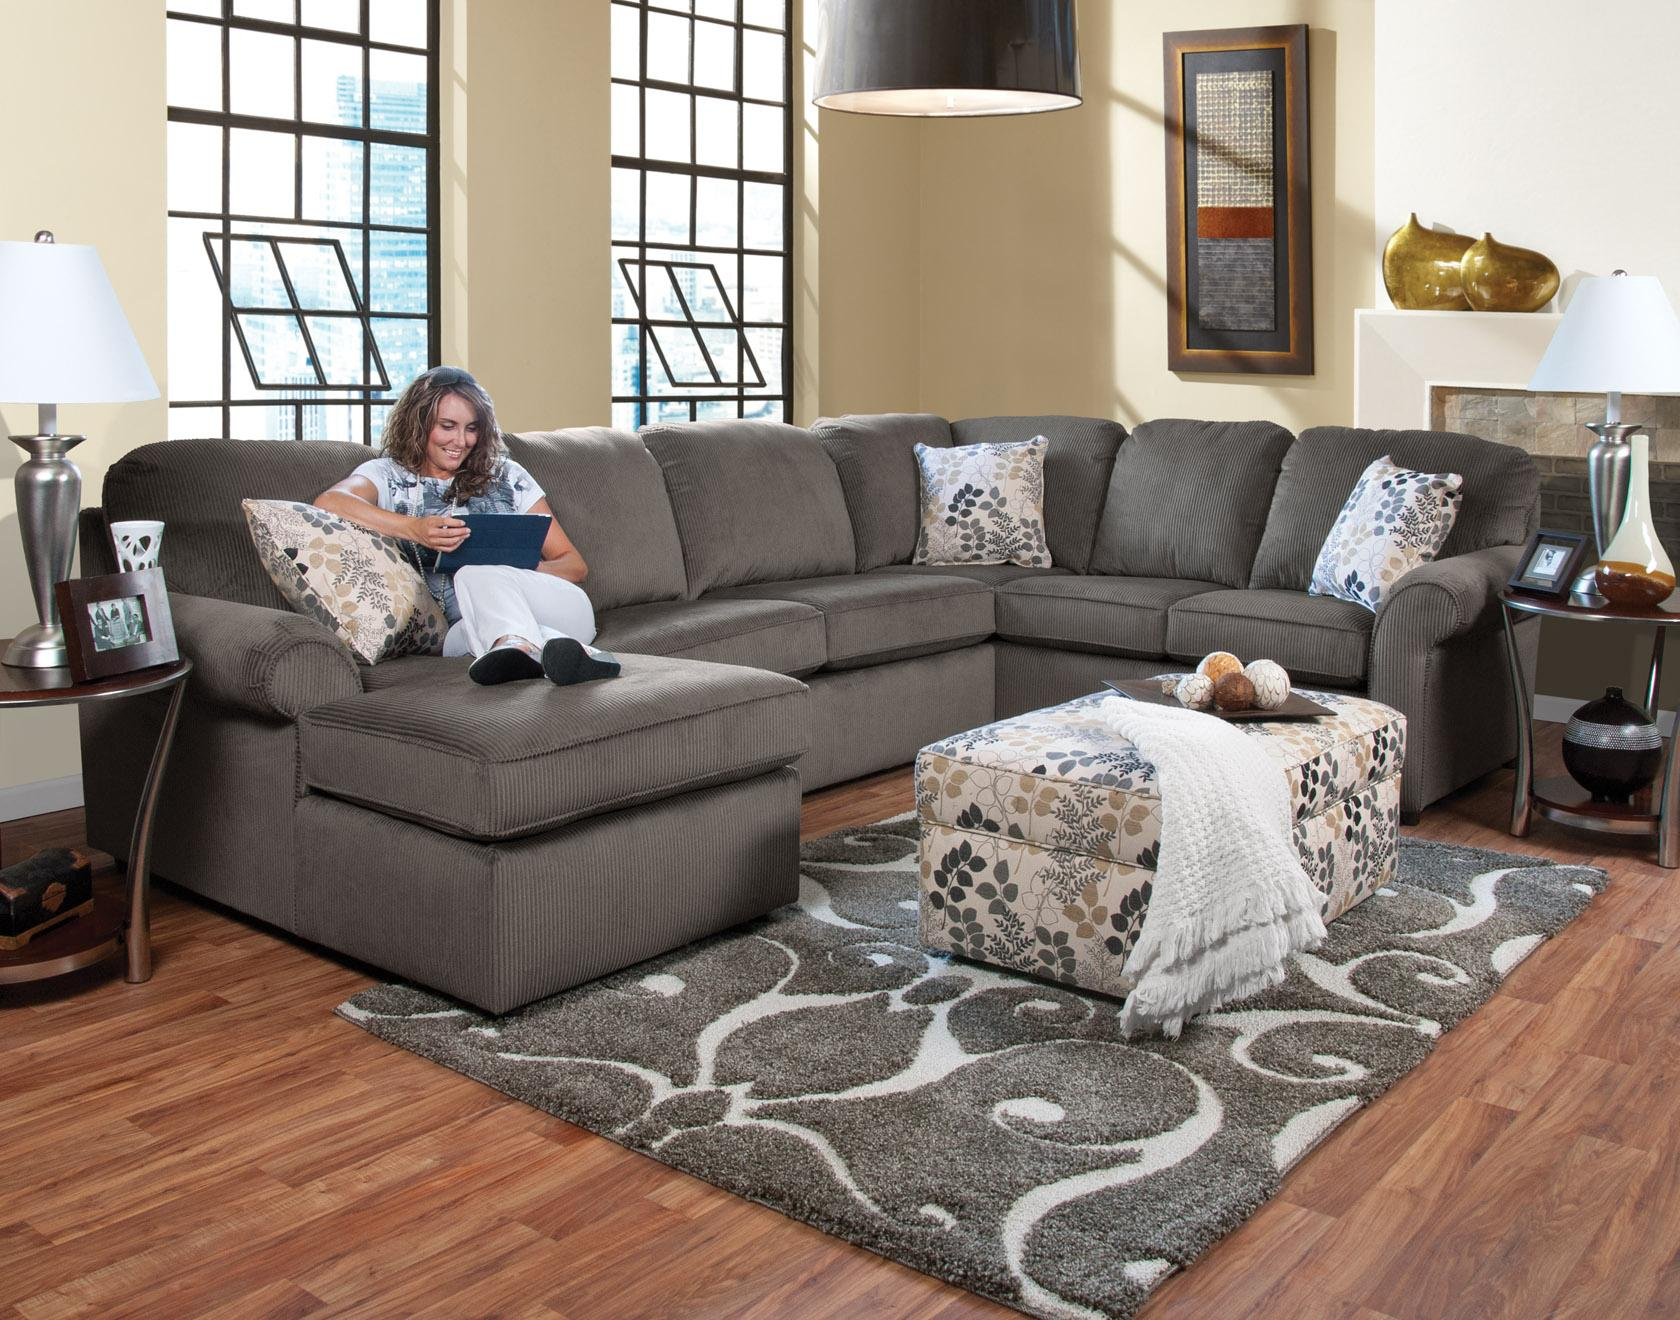 England Malibu 5 6 Seat right side Chaise Sectional Sofa